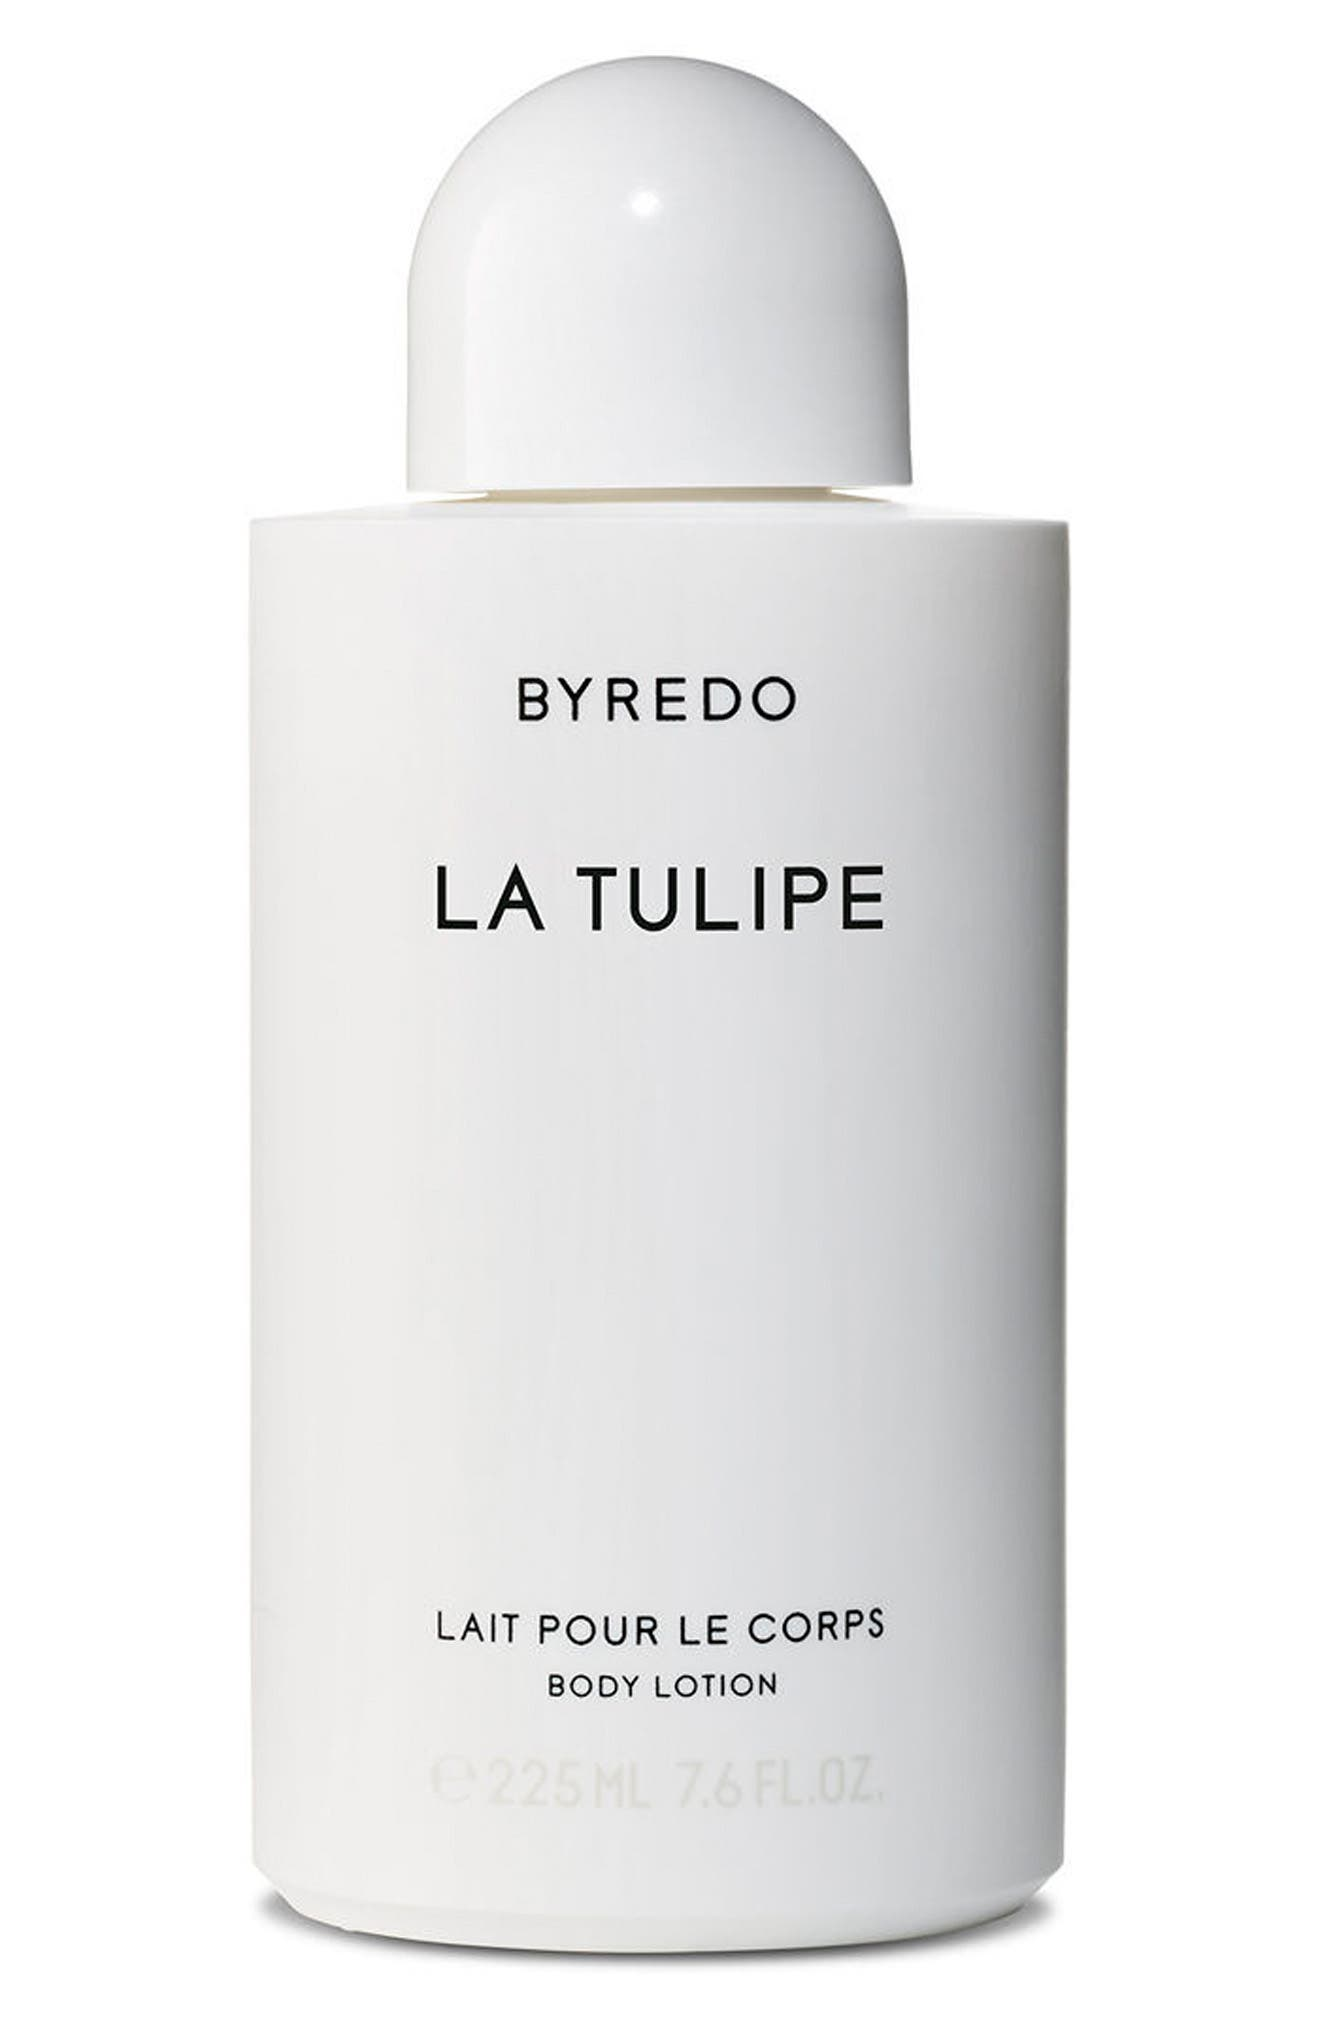 La Tulipe Body Lotion,                             Main thumbnail 1, color,                             No Color